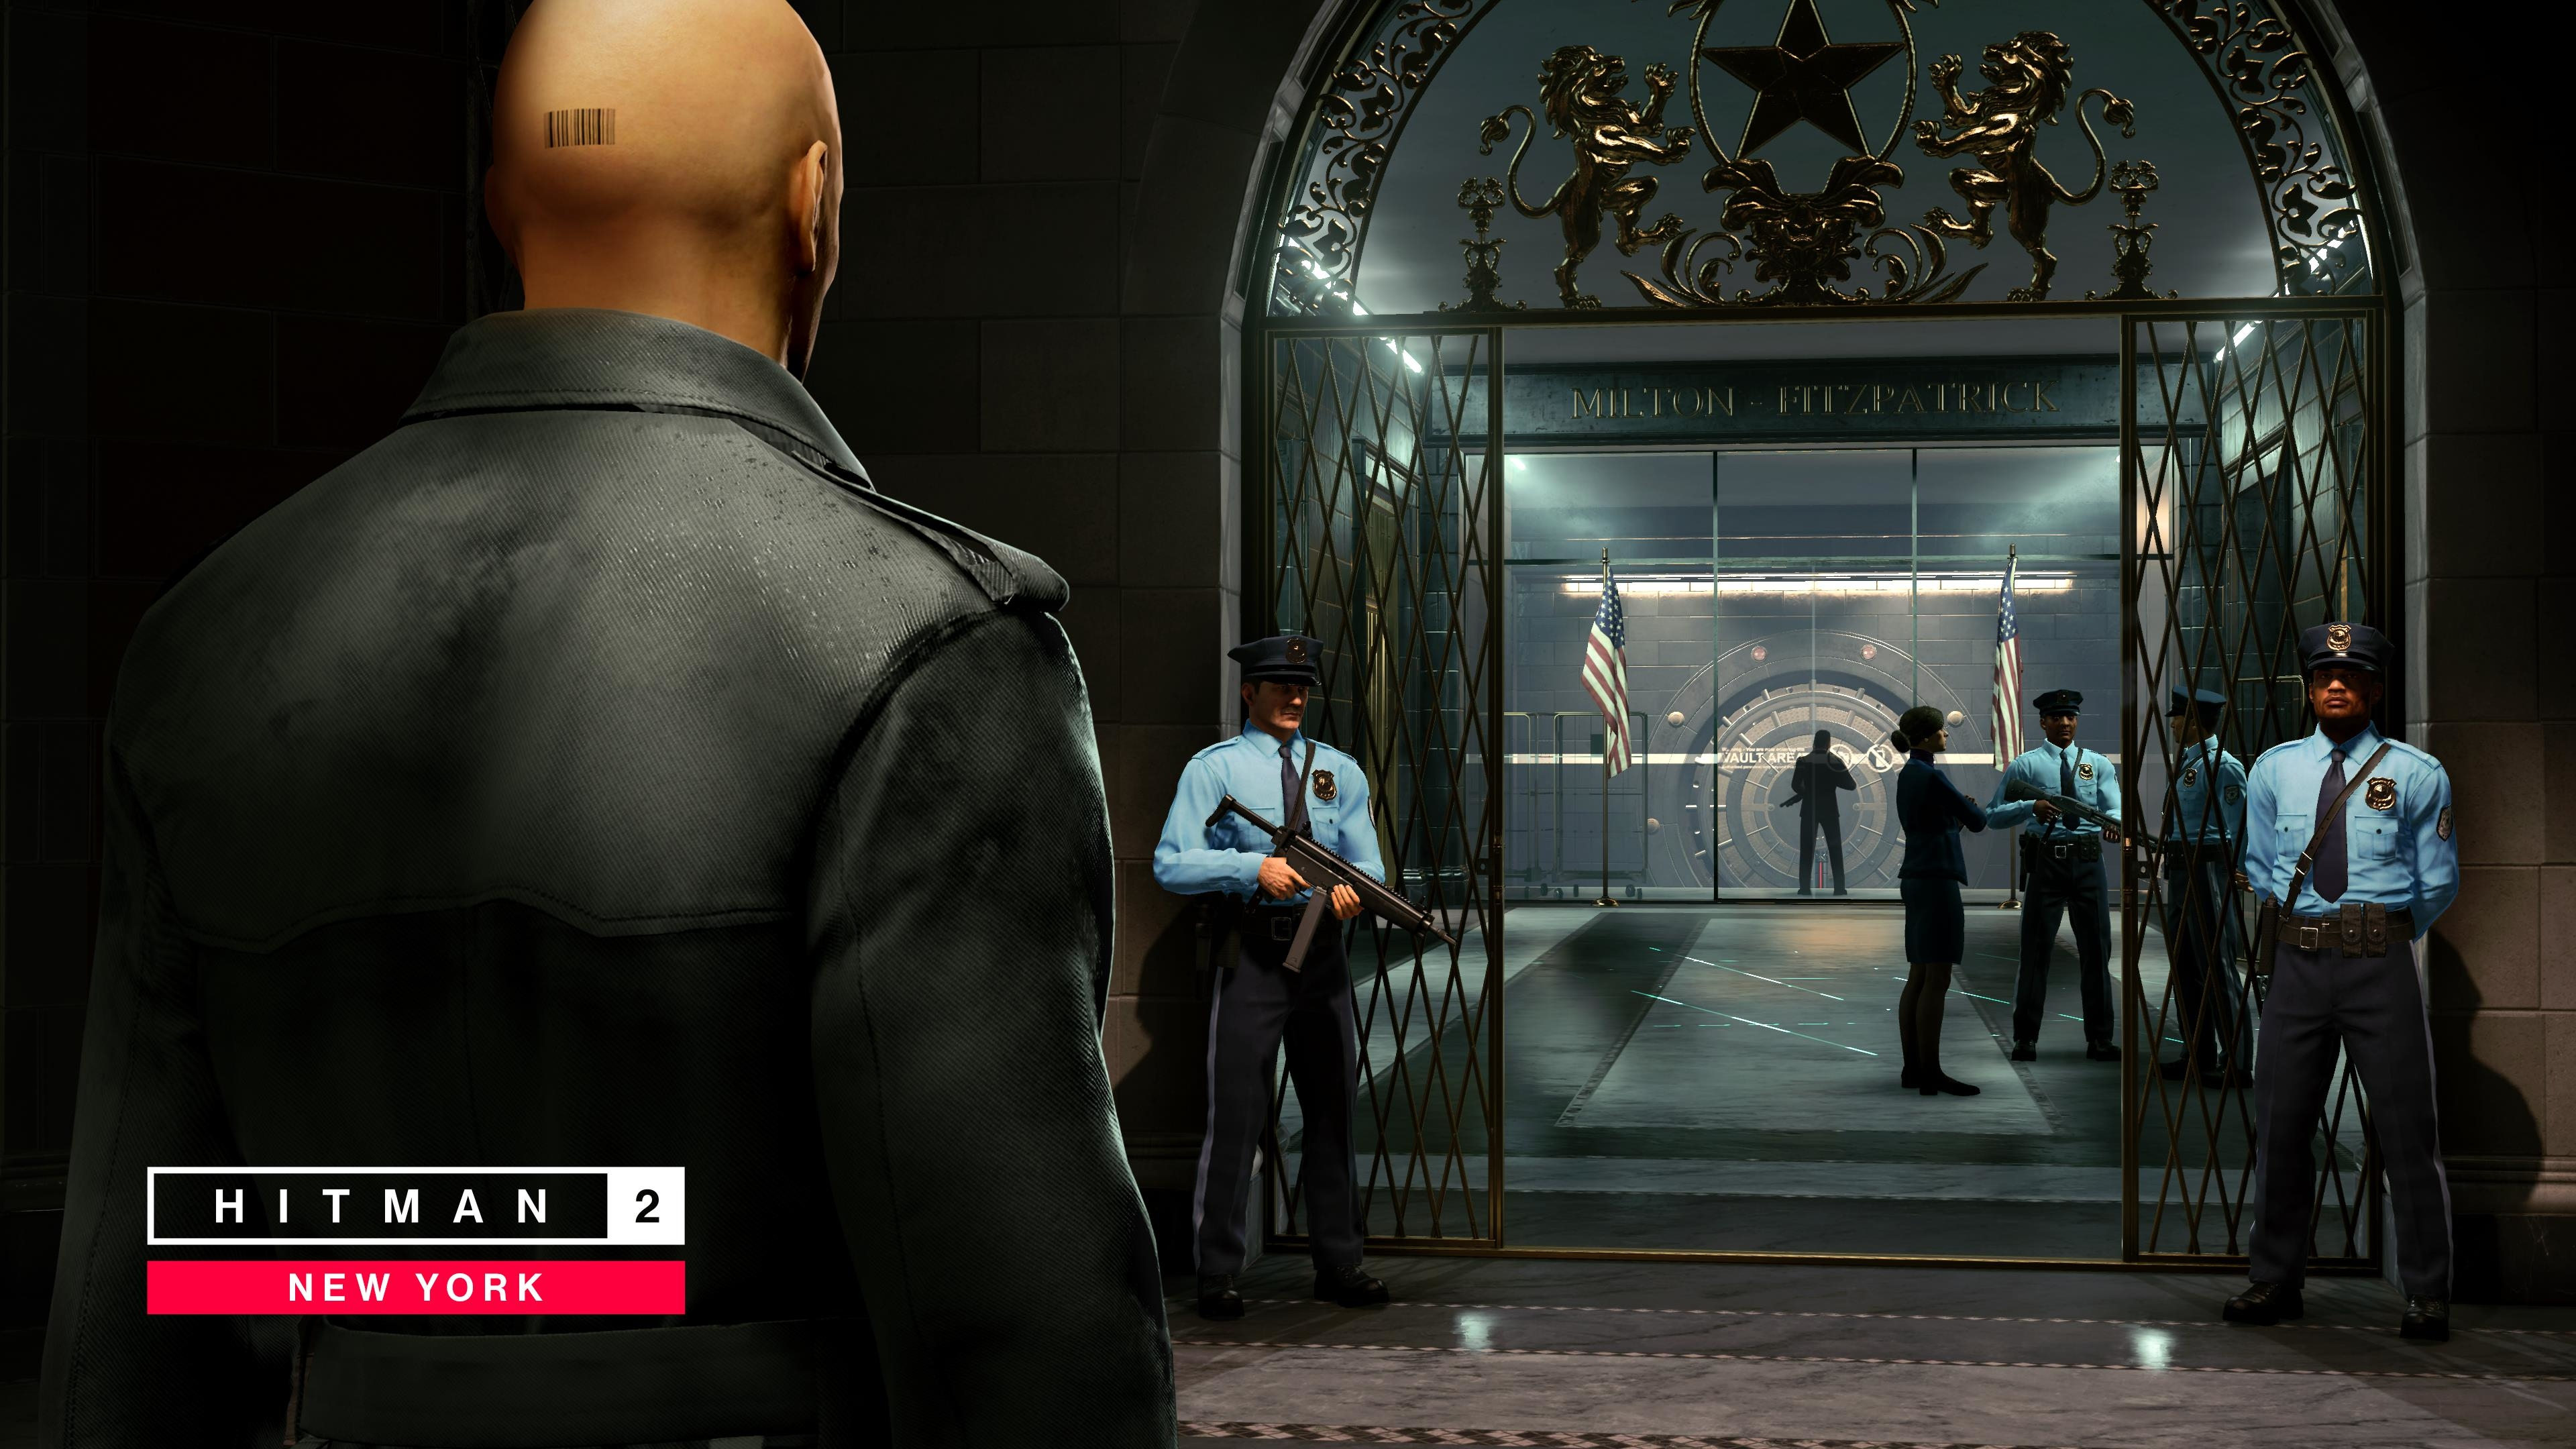 1440x3040 Hitman 2 The Bank 1440x3040 Resolution Wallpaper Hd